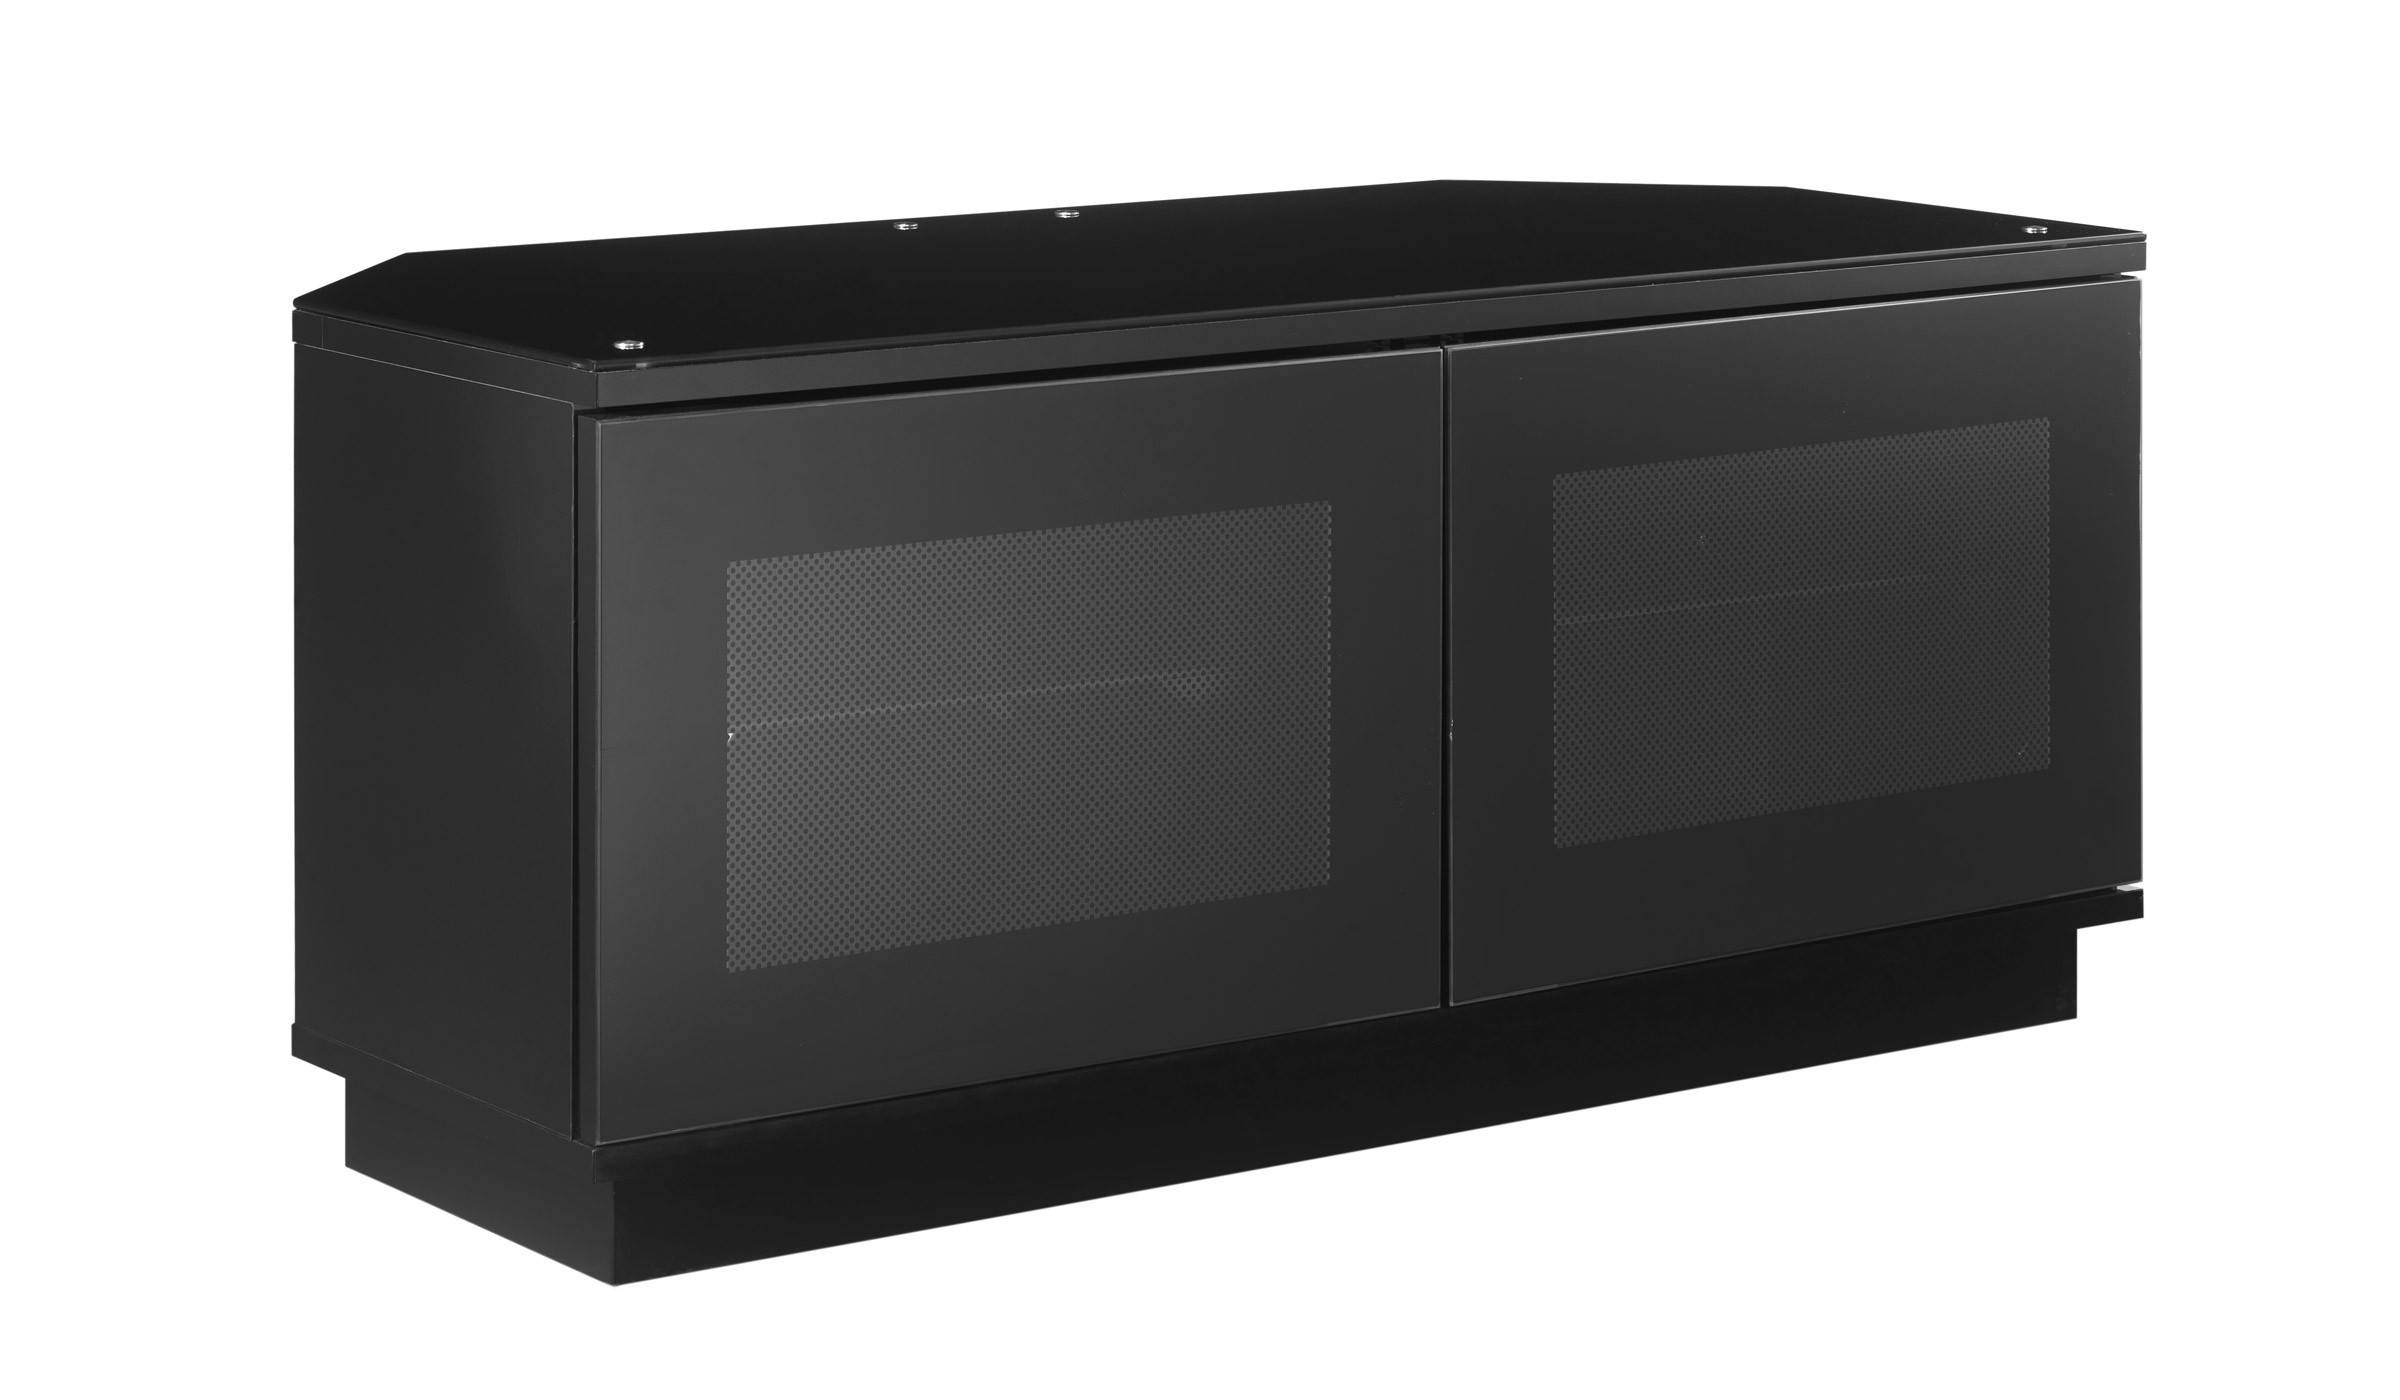 Small Black Tv Stand Cabinet With Door For Corner - Decofurnish intended for Black Tv Cabinets With Doors (Image 13 of 15)